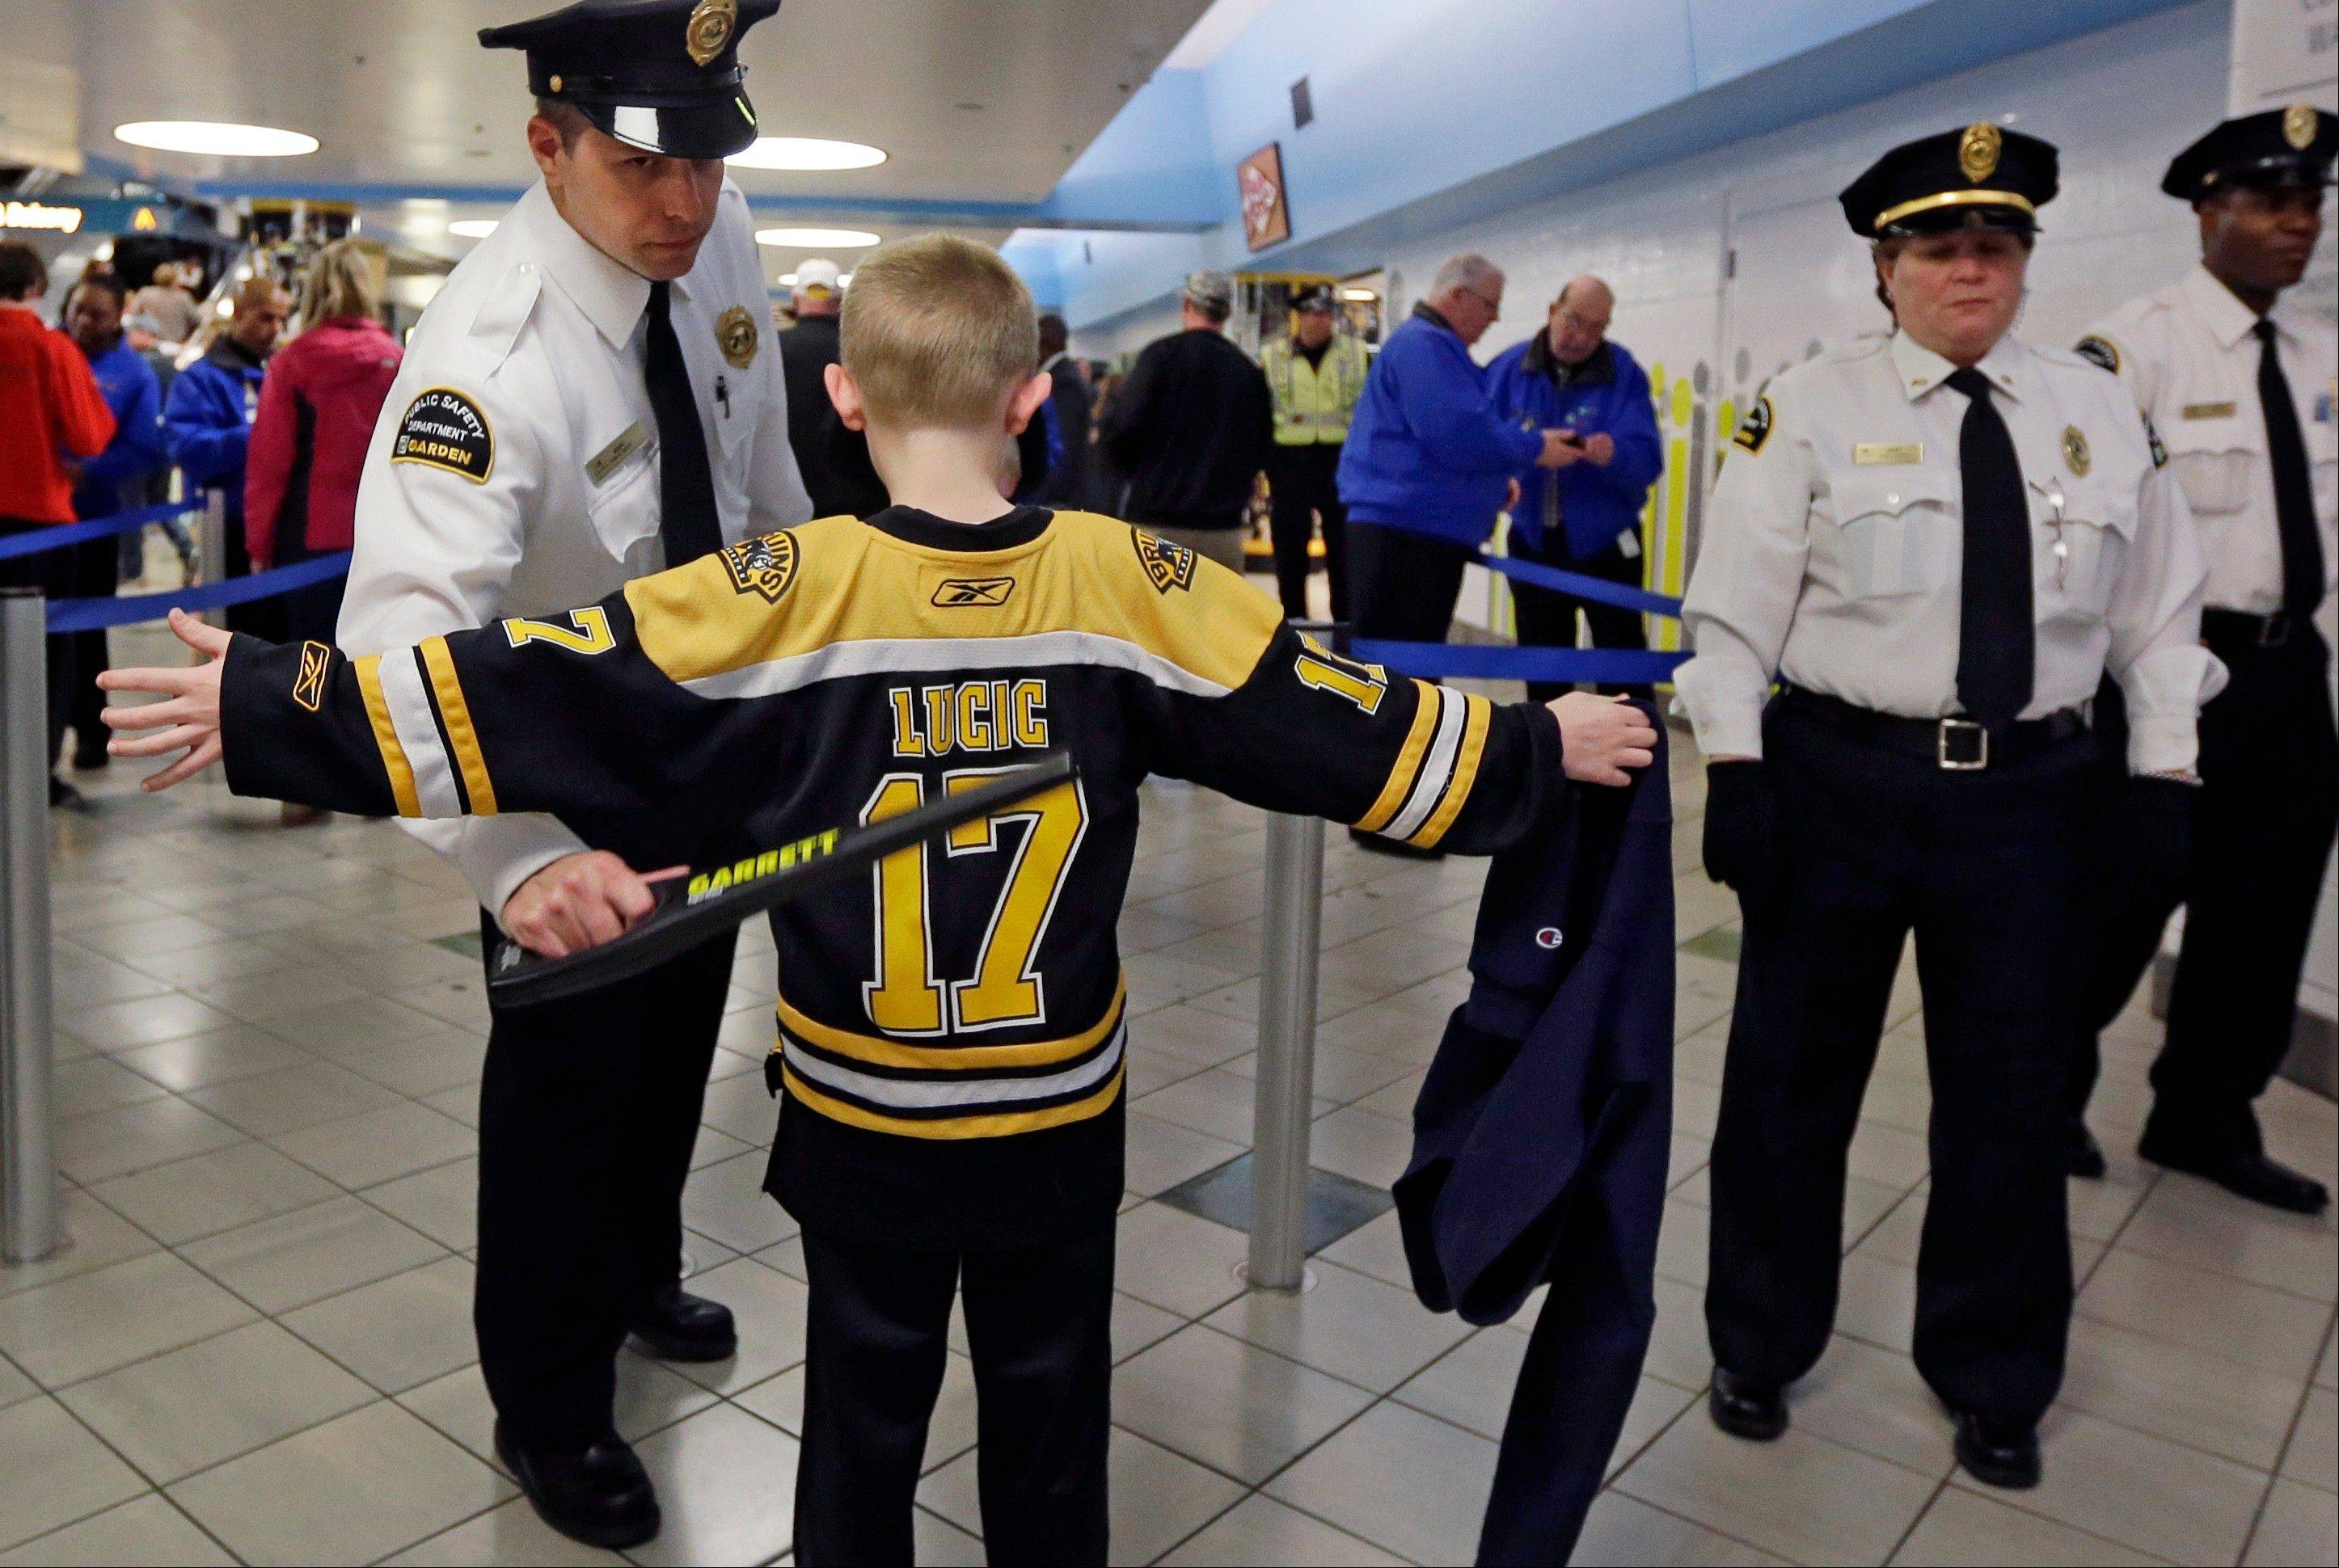 A young Boston Bruins fan raises his arms to be checked on the way into TD Garden prior to a Bruins NHL hockey game against the Buffalo Sabres in Boston, Wednesday, April 17, 2013, in the aftermath of Monday's Boston Marathon bombings.